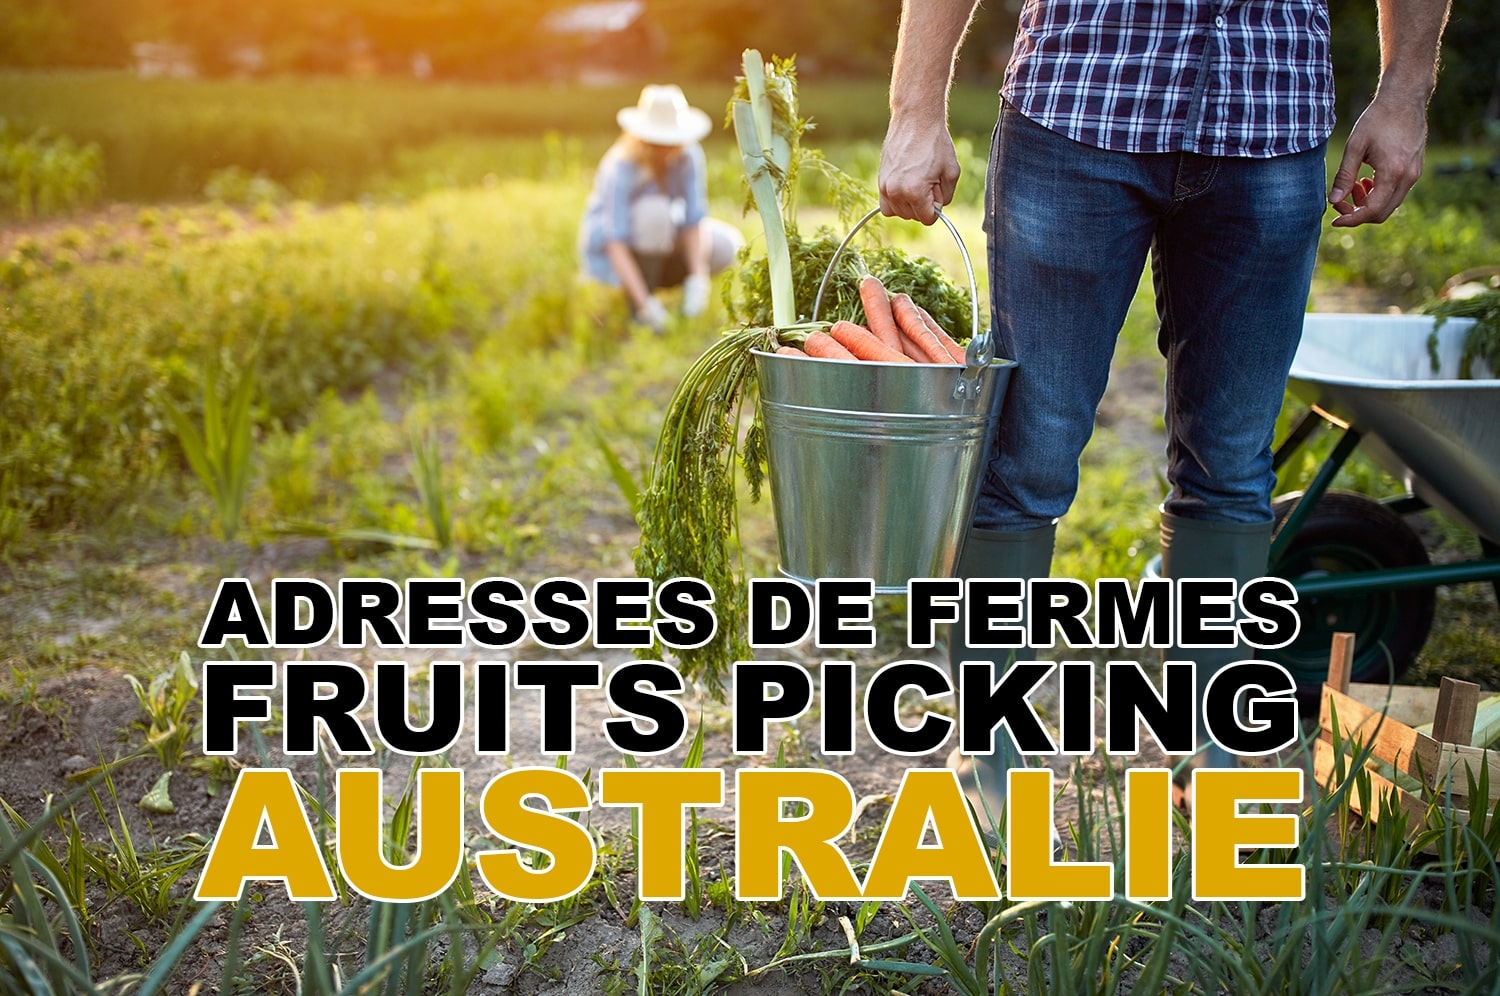 Adresses de fermes pour le fruits picking en Australie